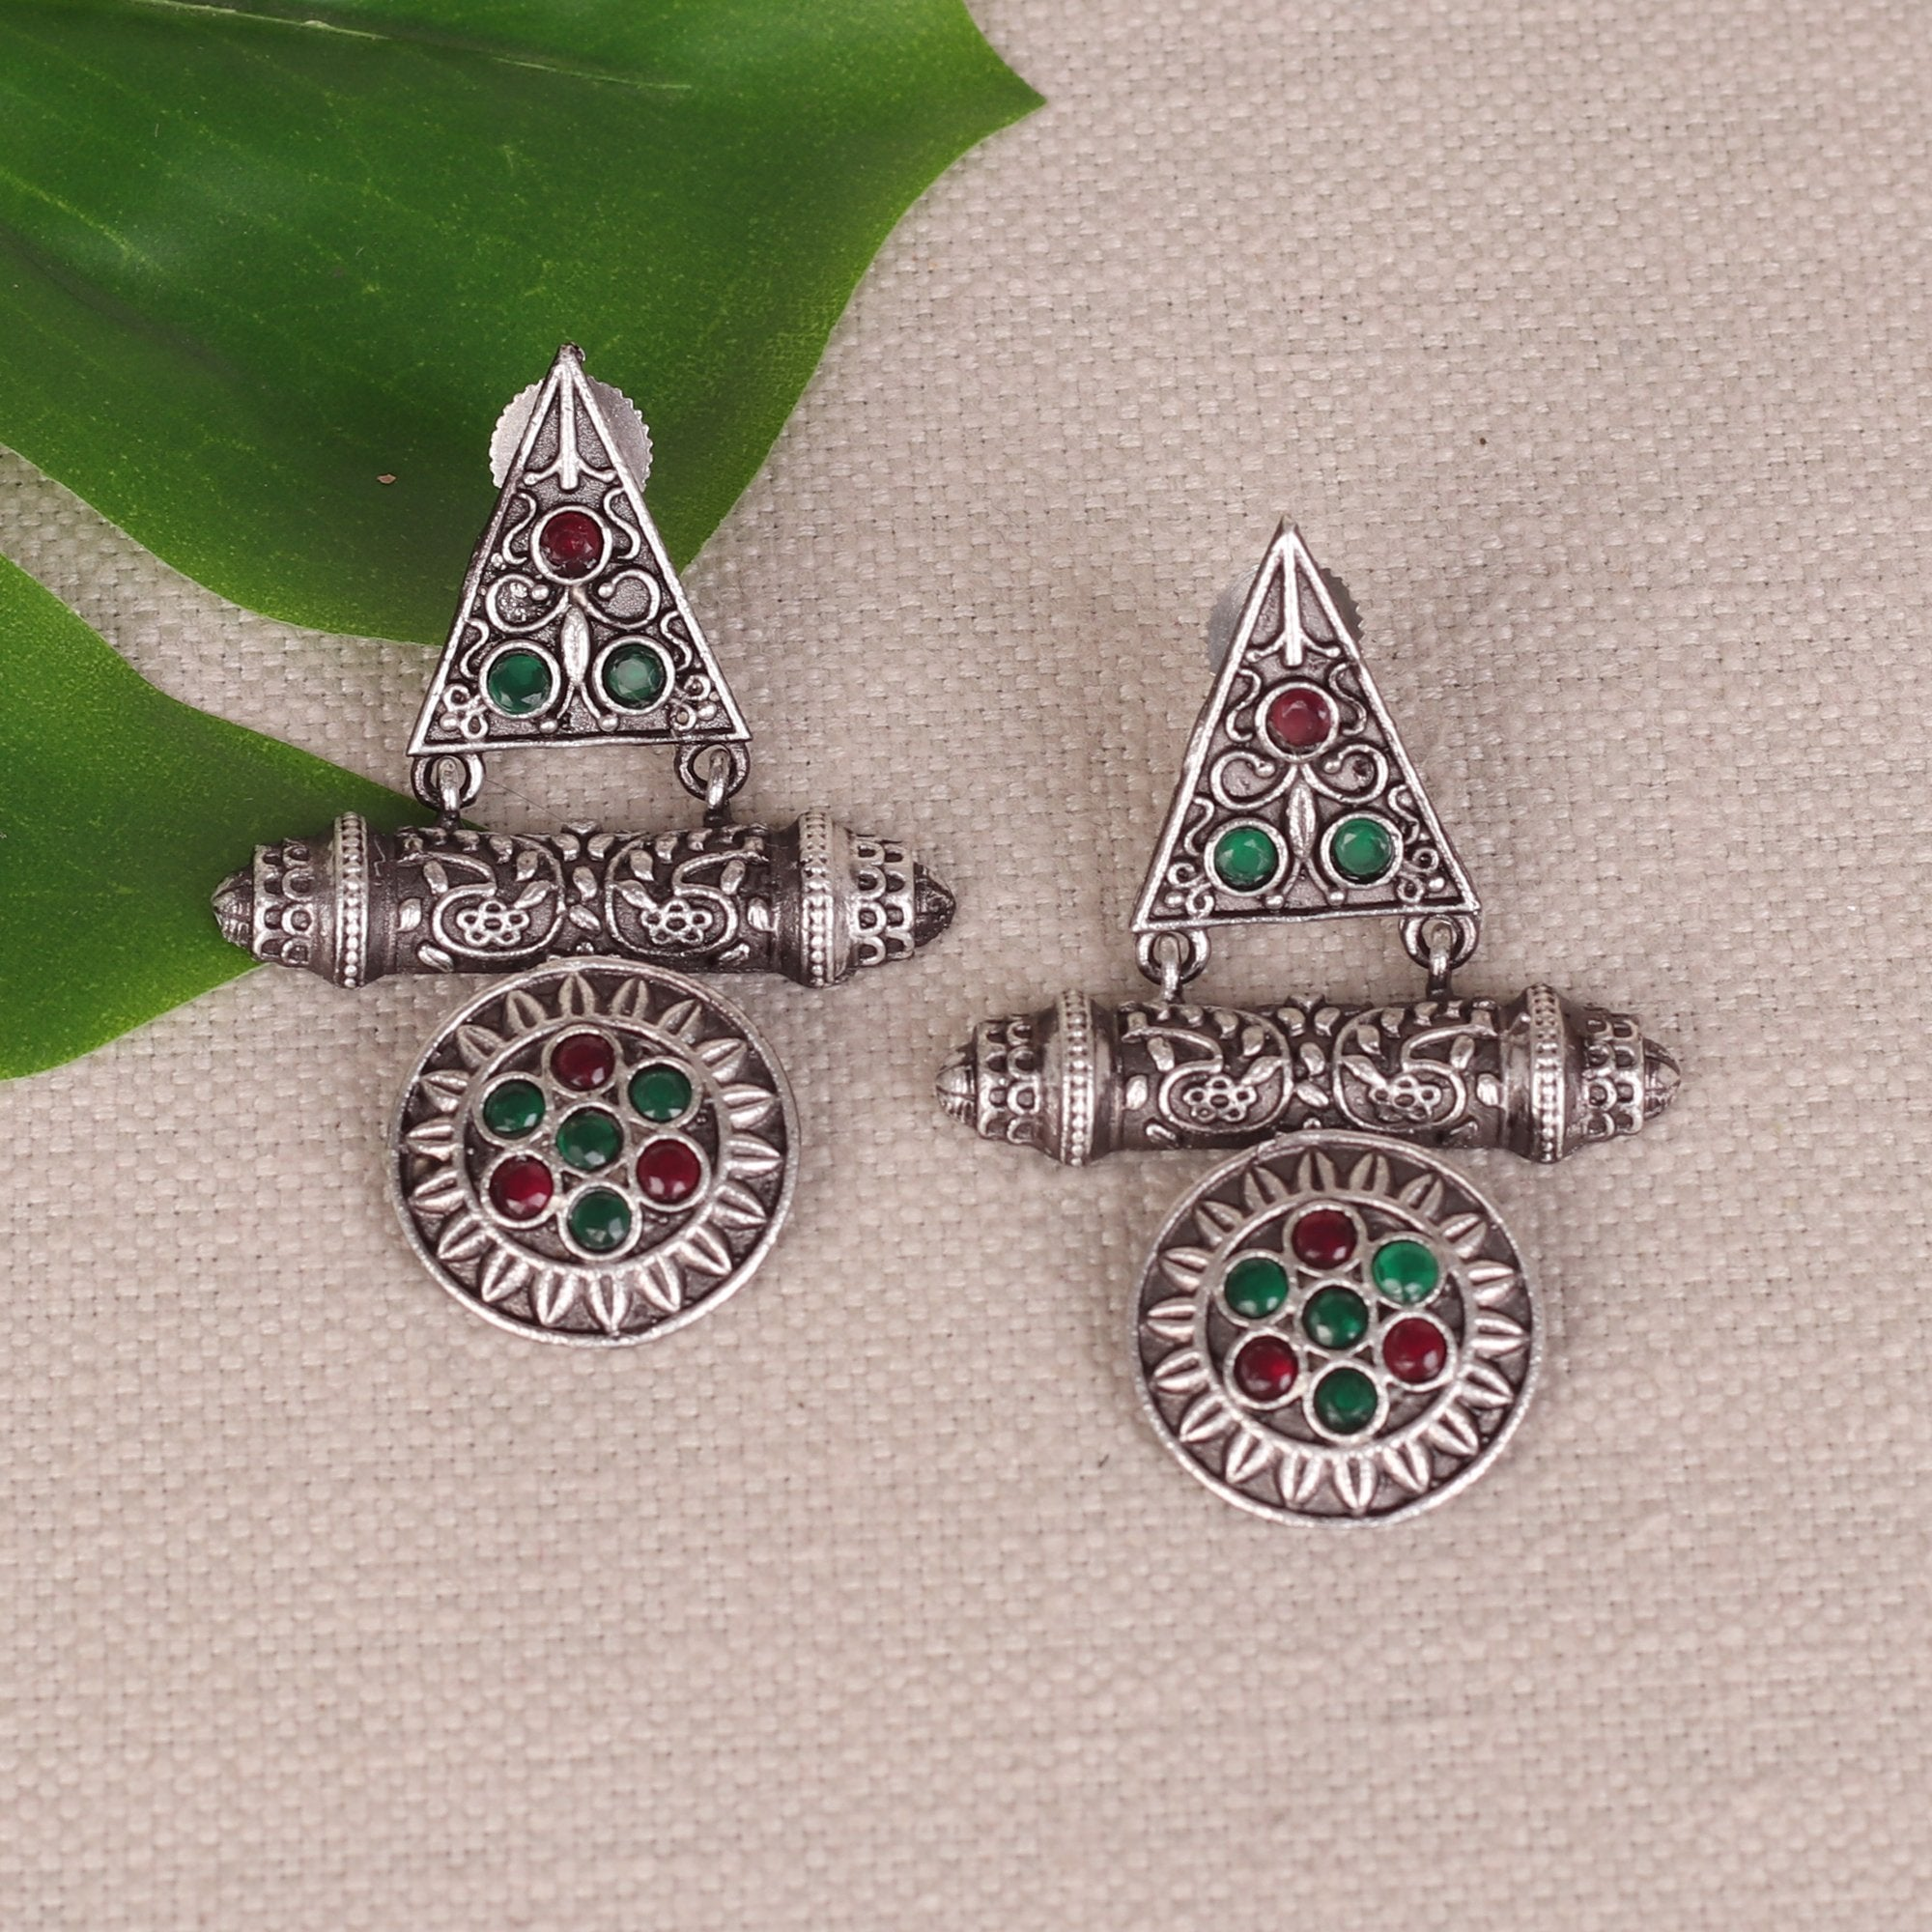 German Silver Earings With Ethnic Motifs